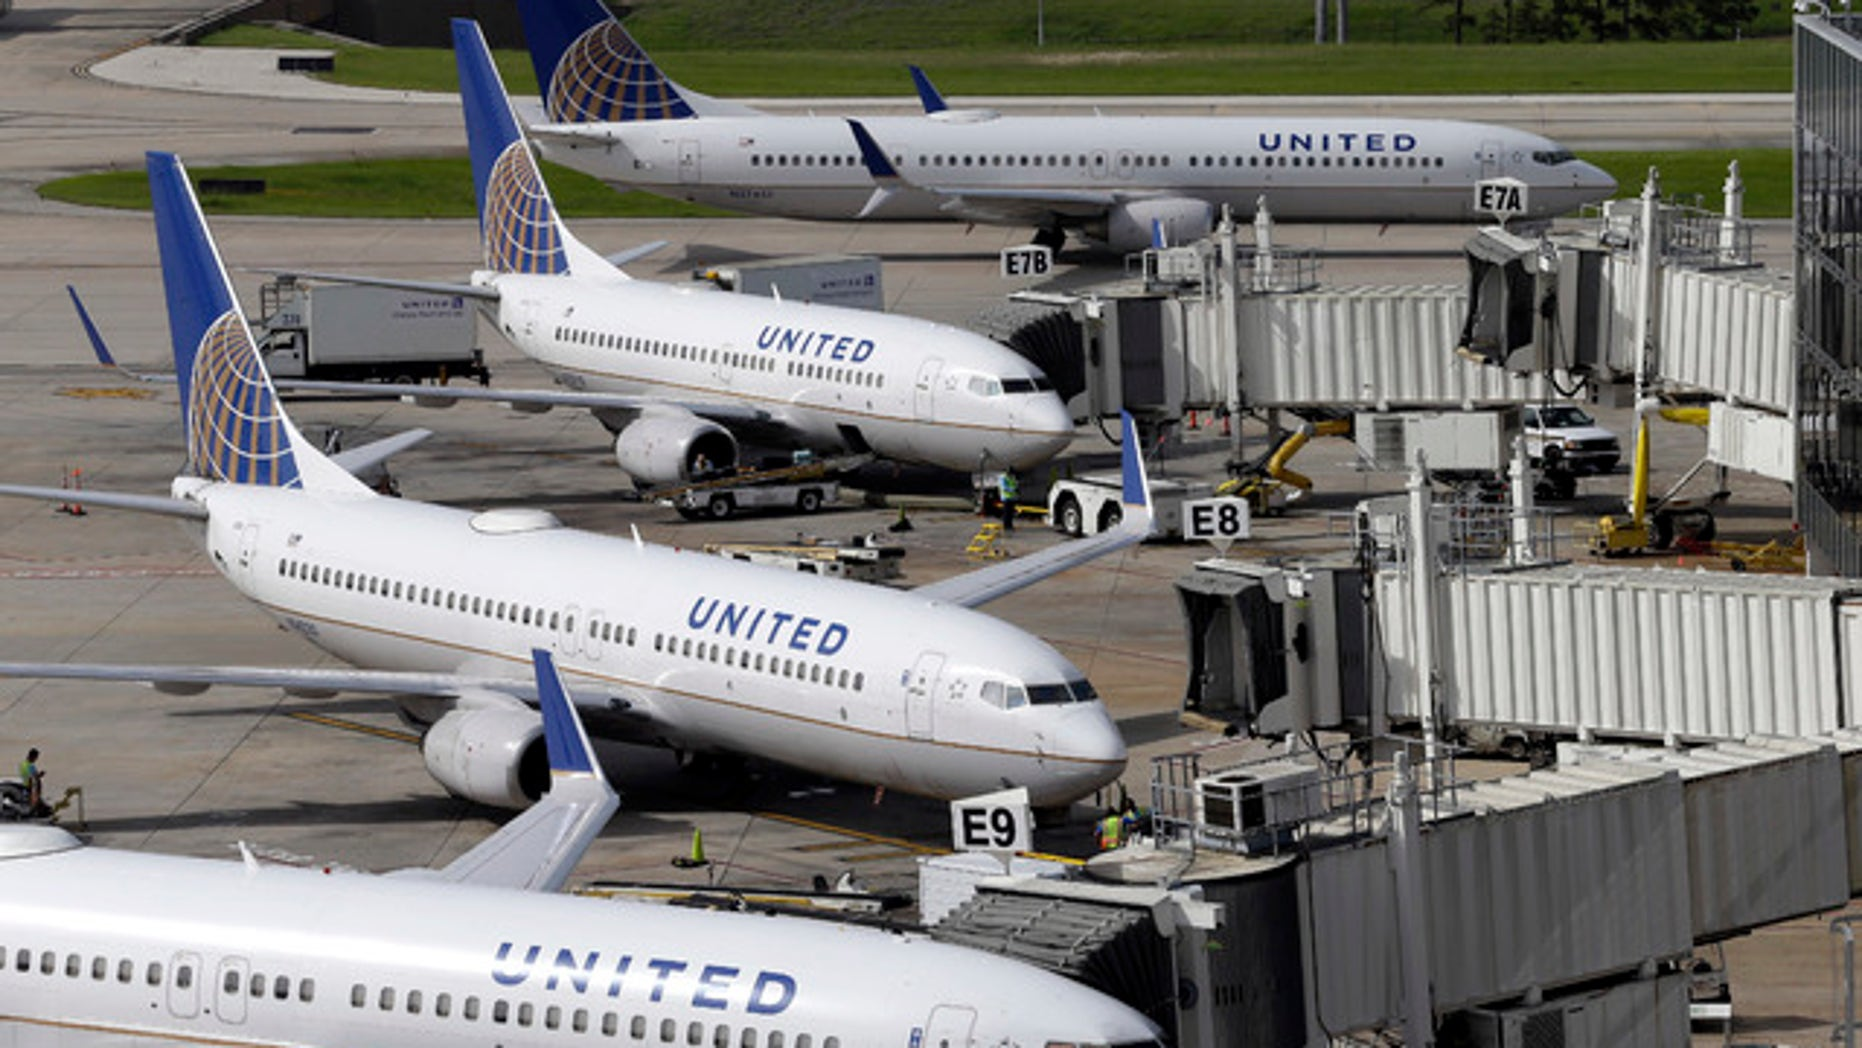 United is facing steep competition from budget carriers like Spirit and Frontier.